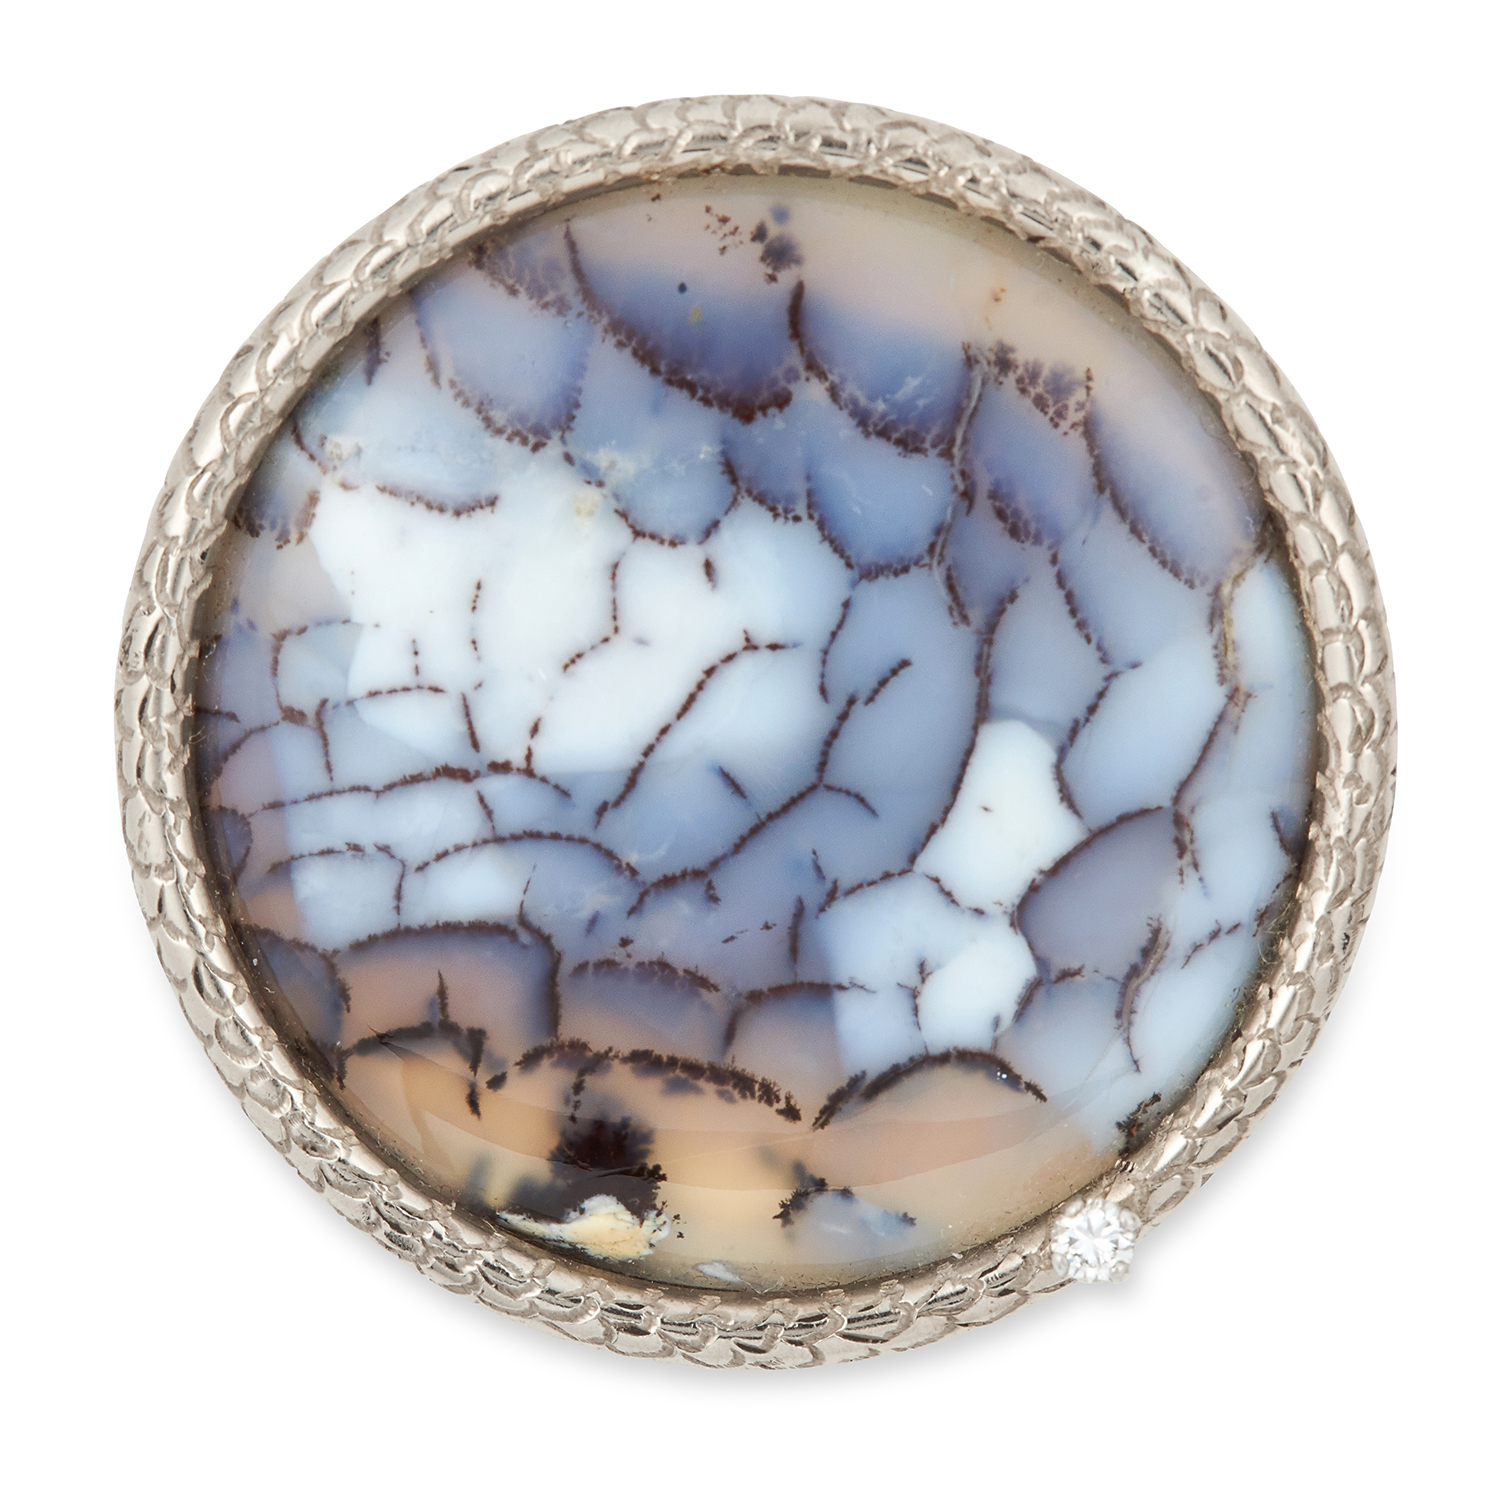 AN AGATE AND DIAMOND BROOCH, ANDREW GRIMA, CIRCA 1970 set with a polished circular agate panel and a